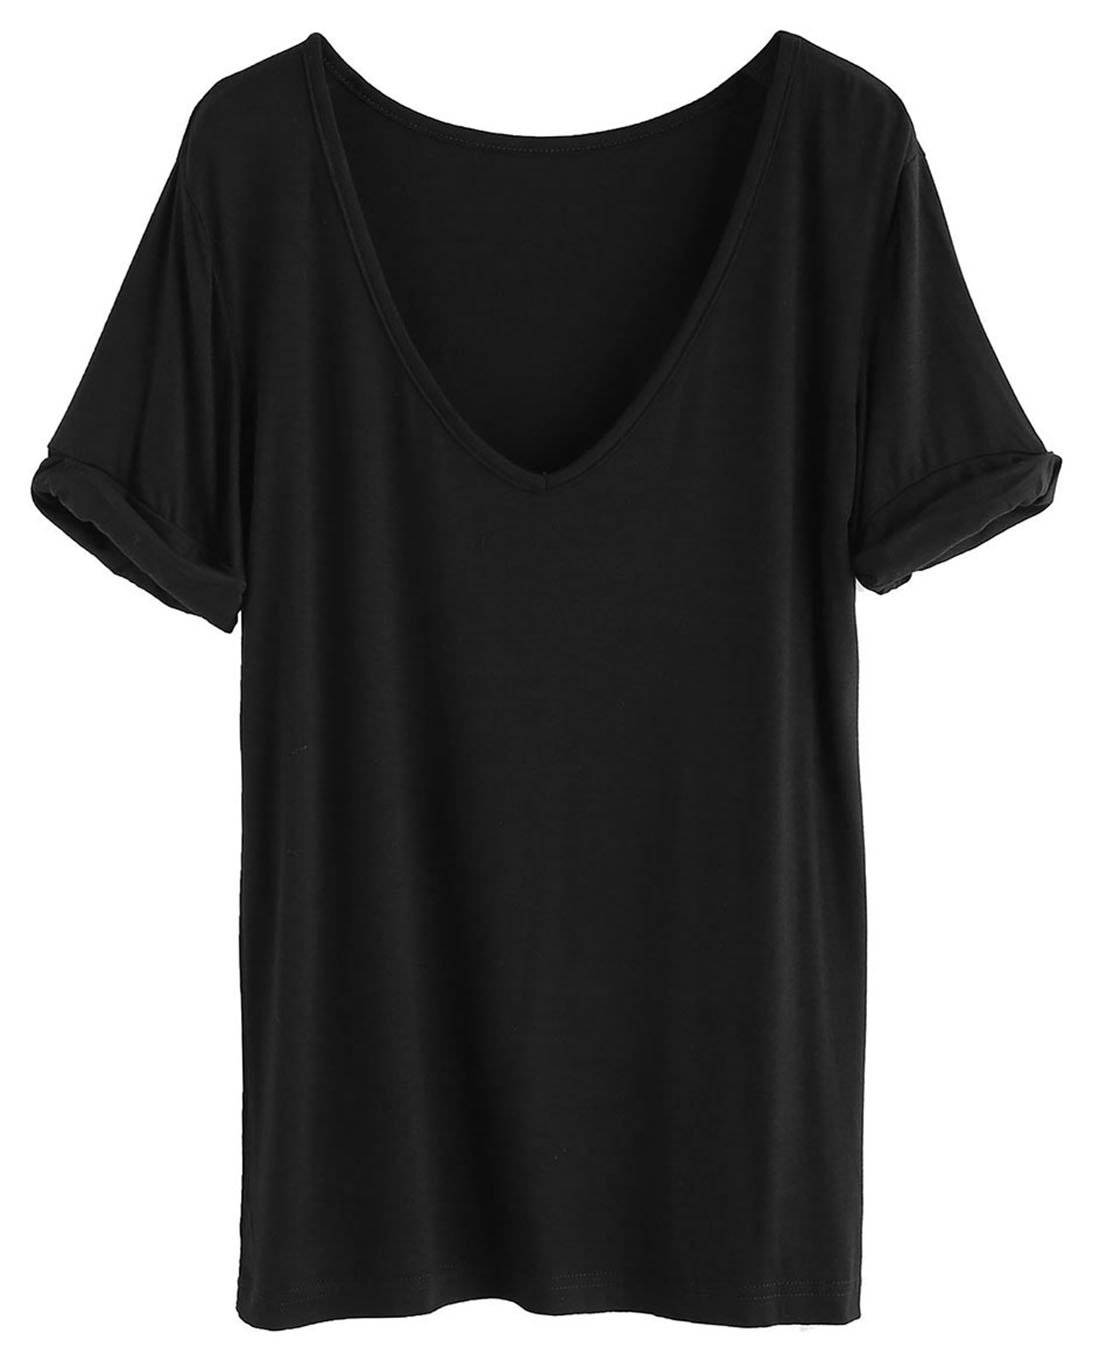 SheIn Women's Summer Short Sleeve Loose Casual Tee T-Shirt Black# Large